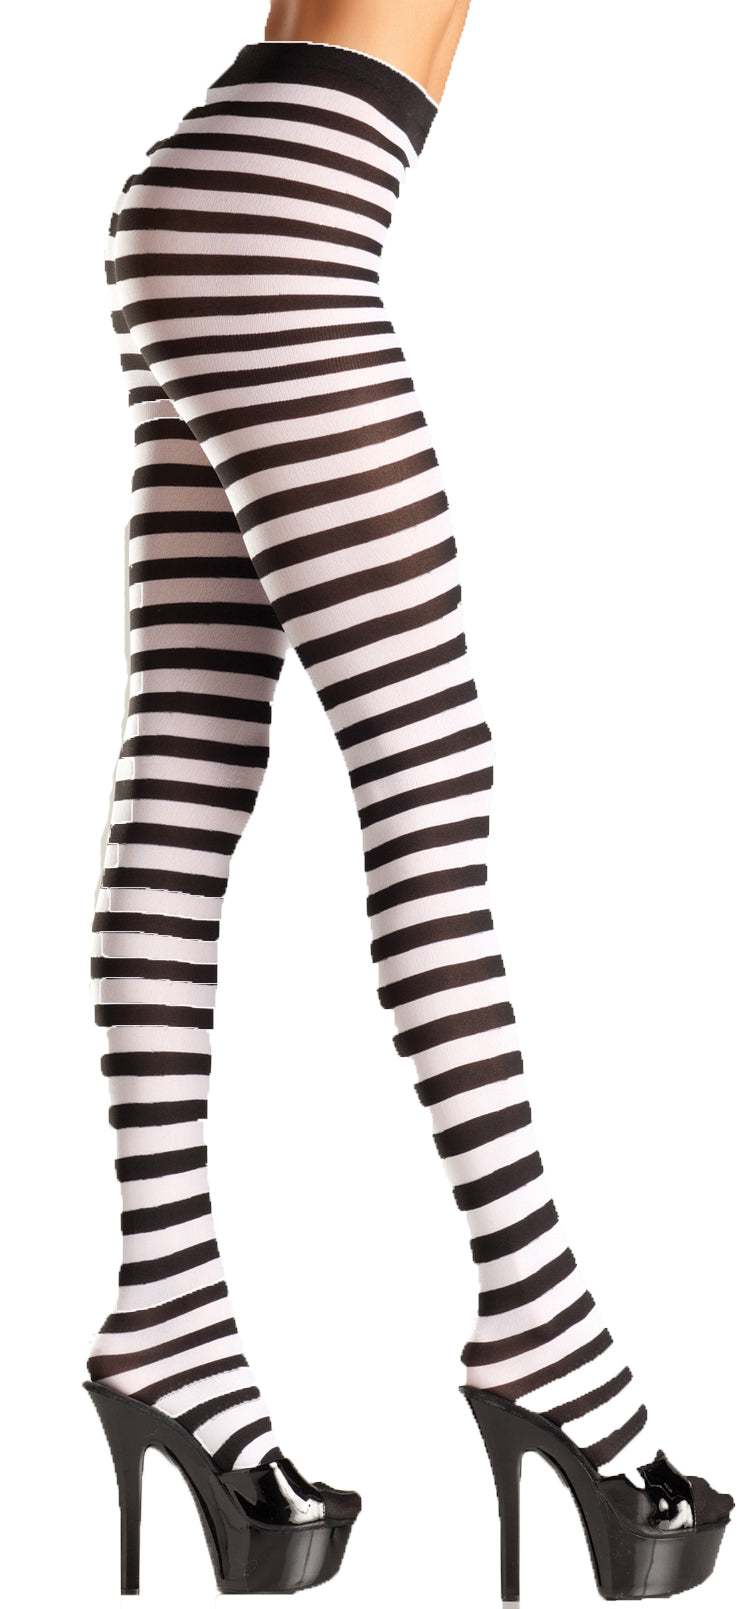 Black and White Striped Tights BW517BW